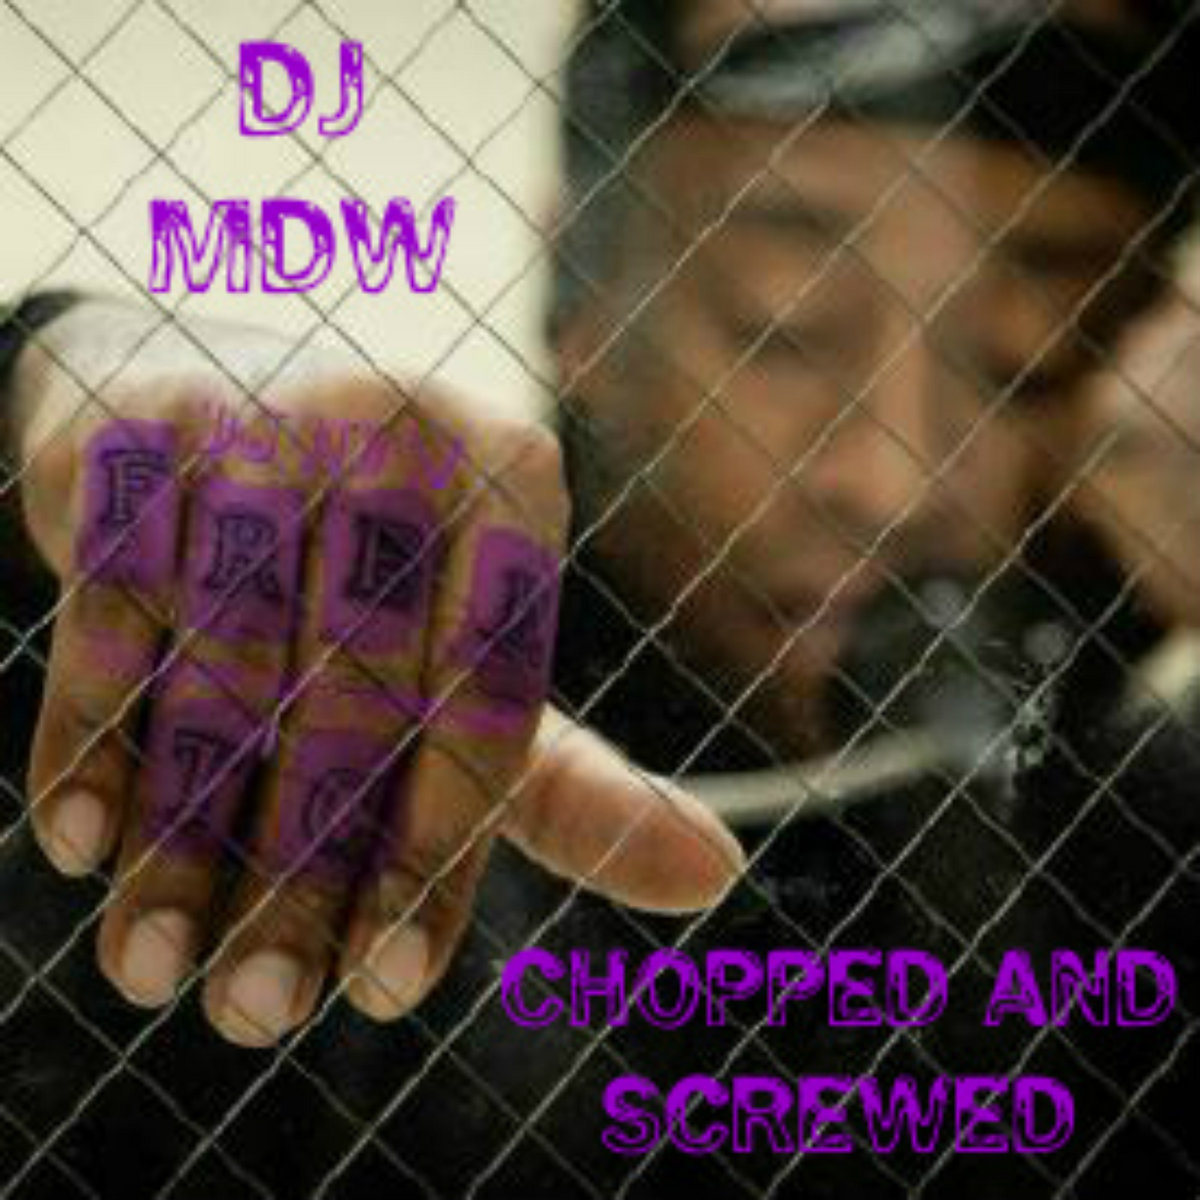 Actress ft R  Kelly (Chopped and Screwed) by DJ MDW | DJ MDW